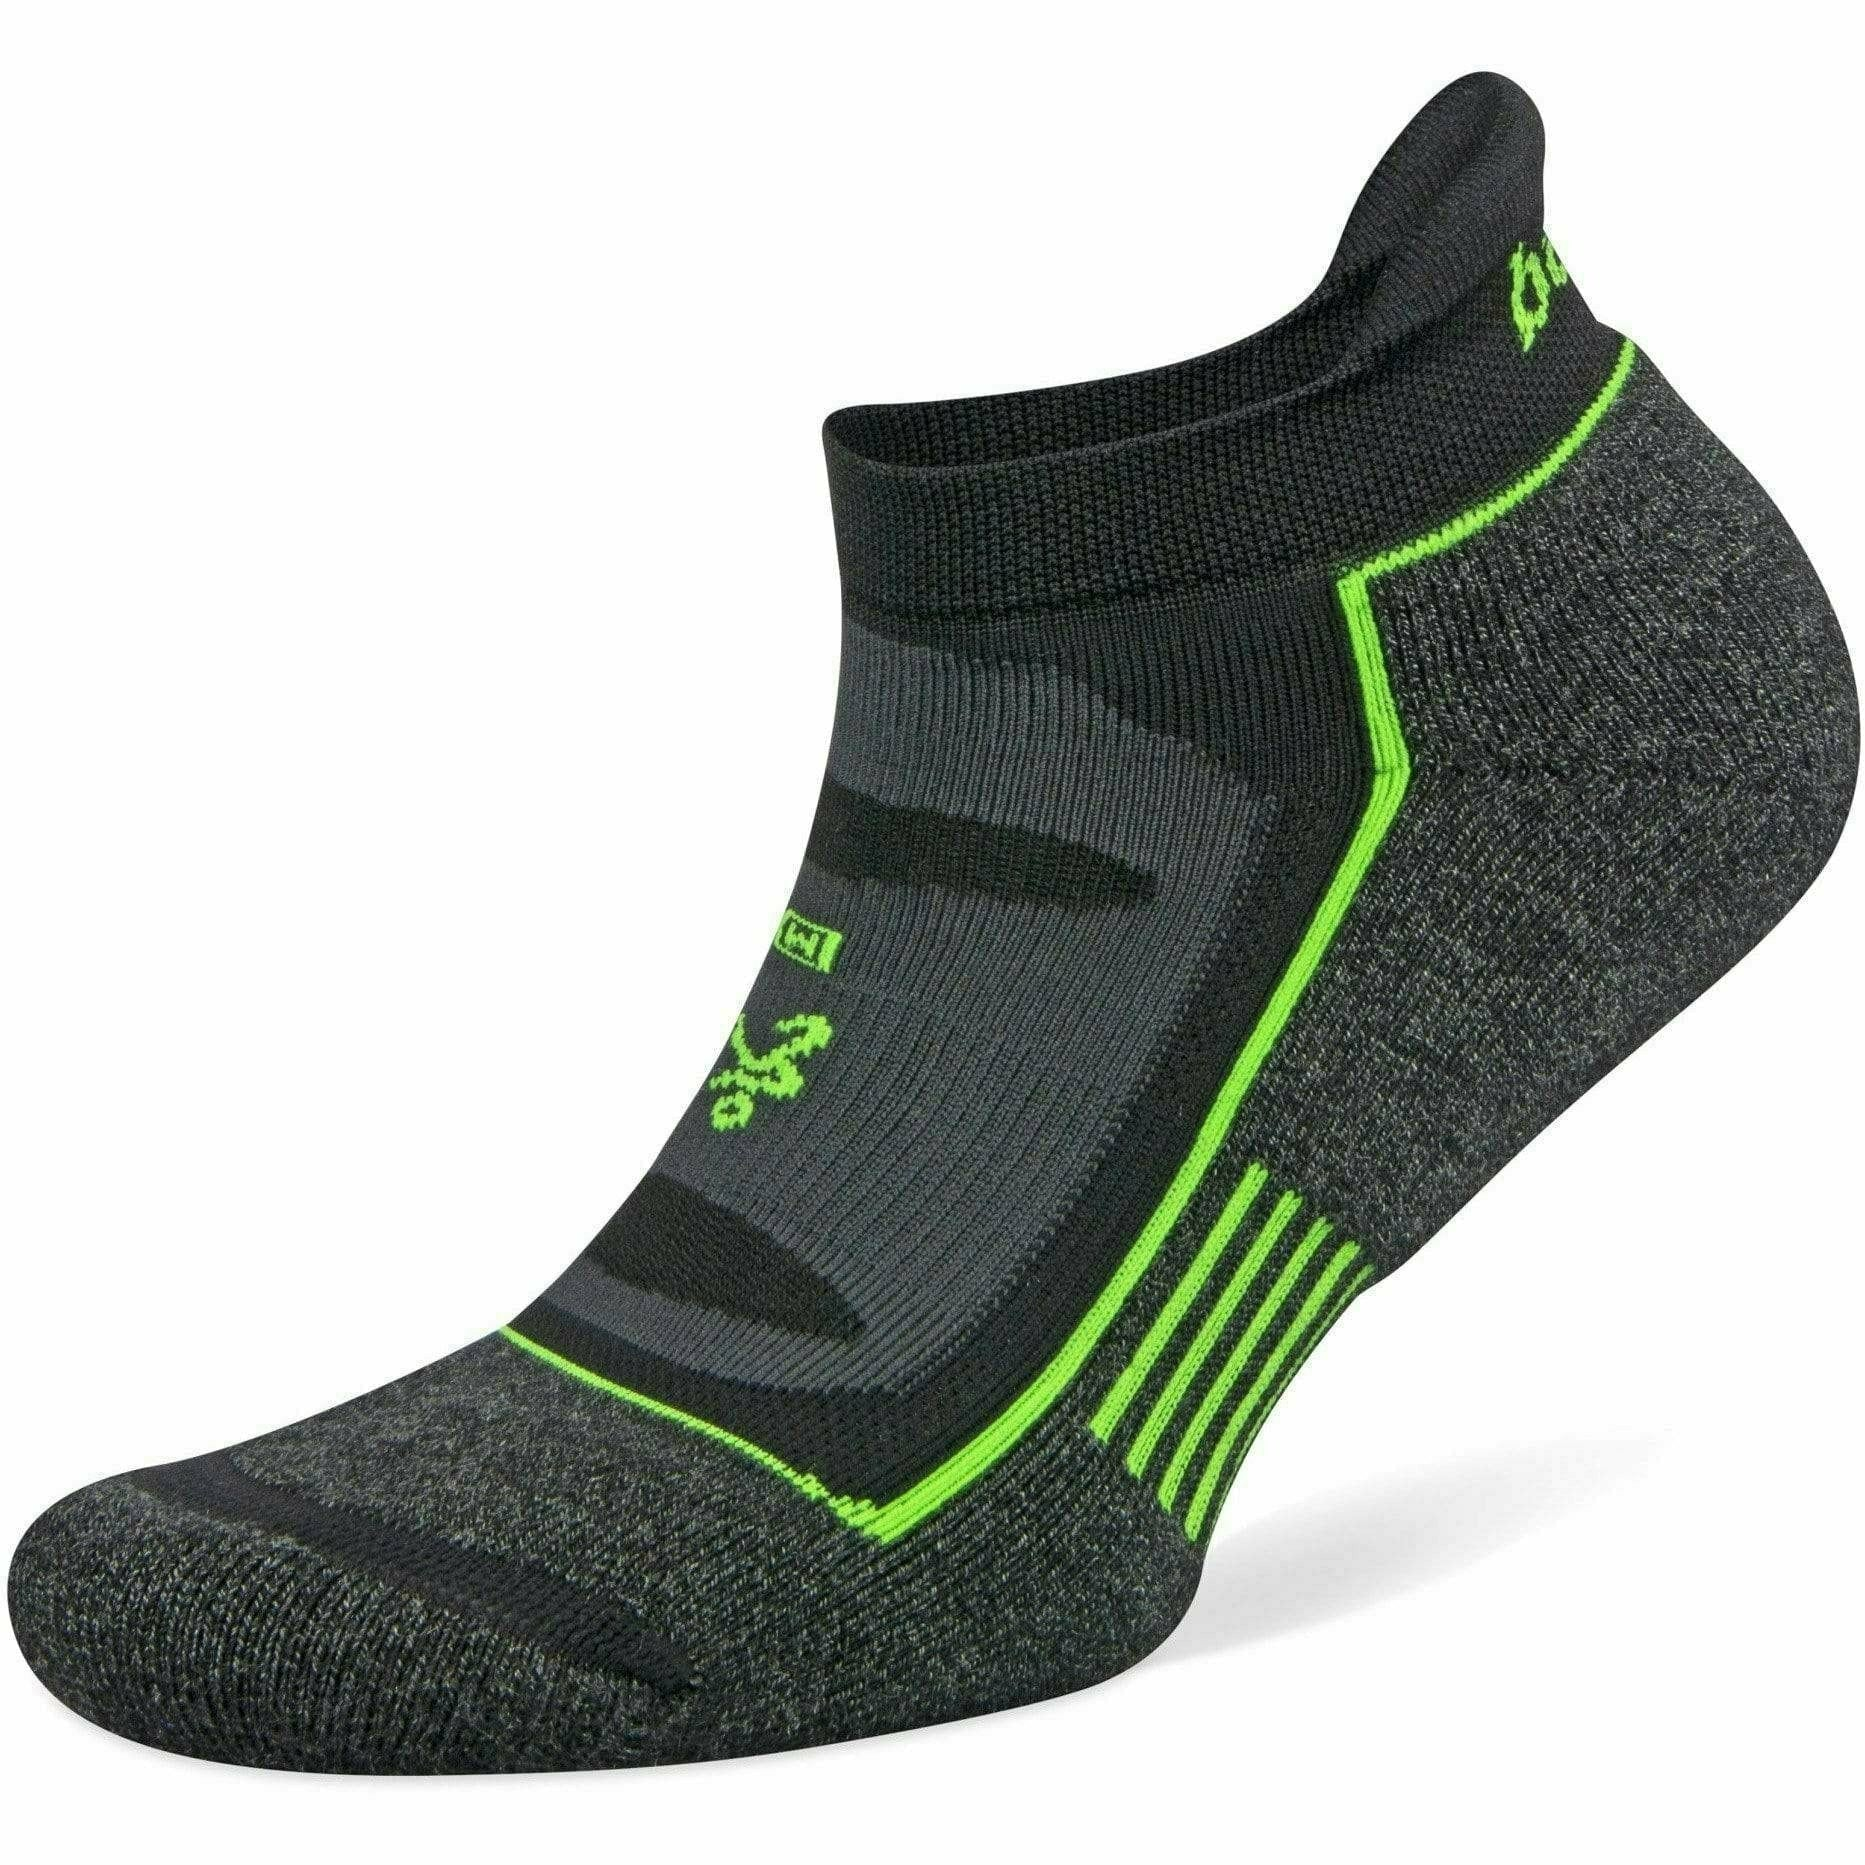 Balega Blister Resist No Show Socks Small / Charcoal/Black